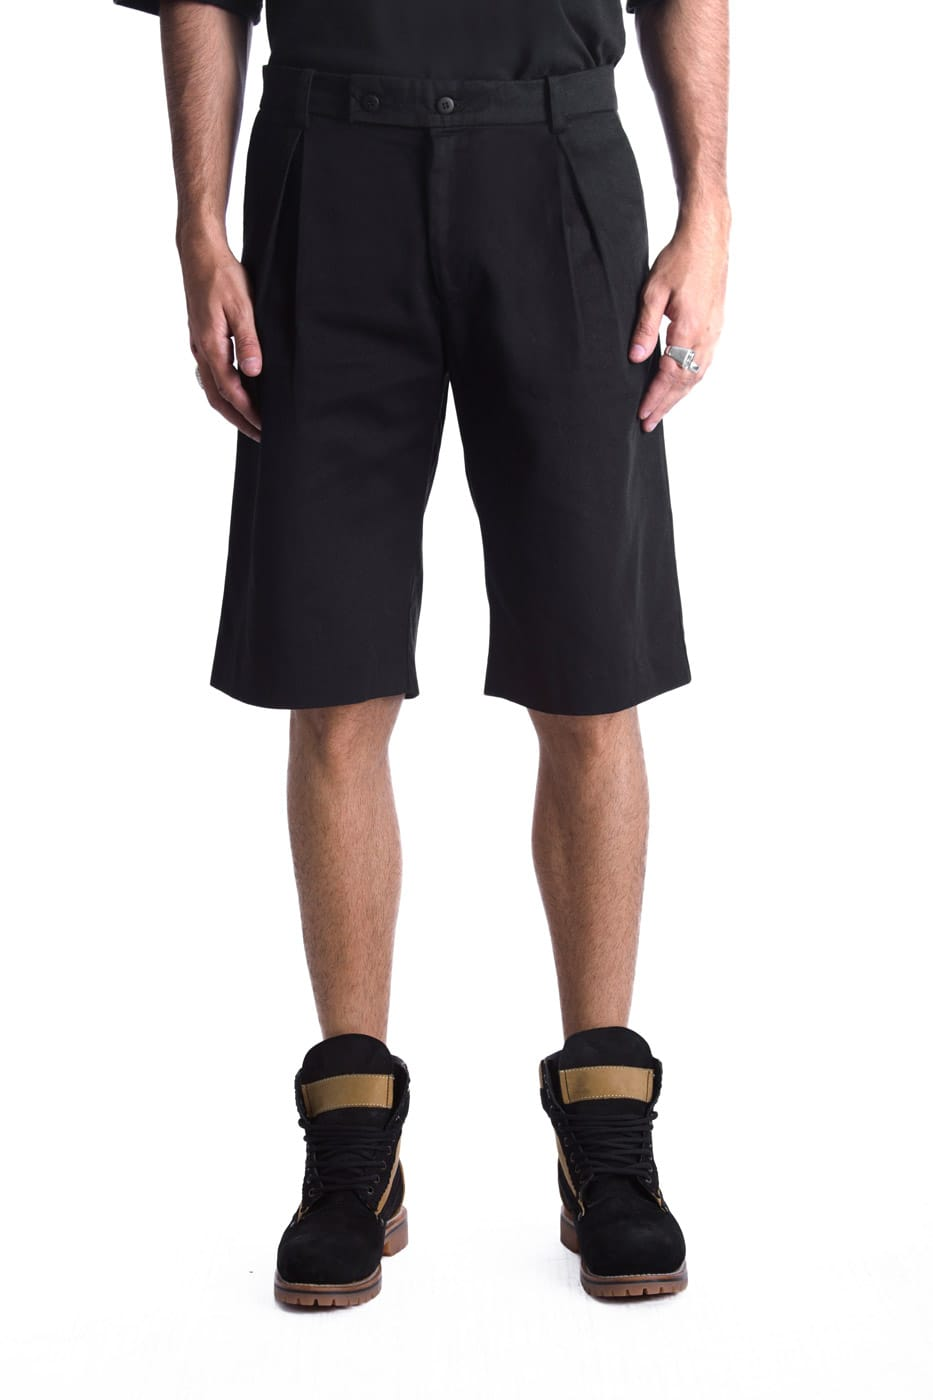 BLACK BAGGY SHORTS